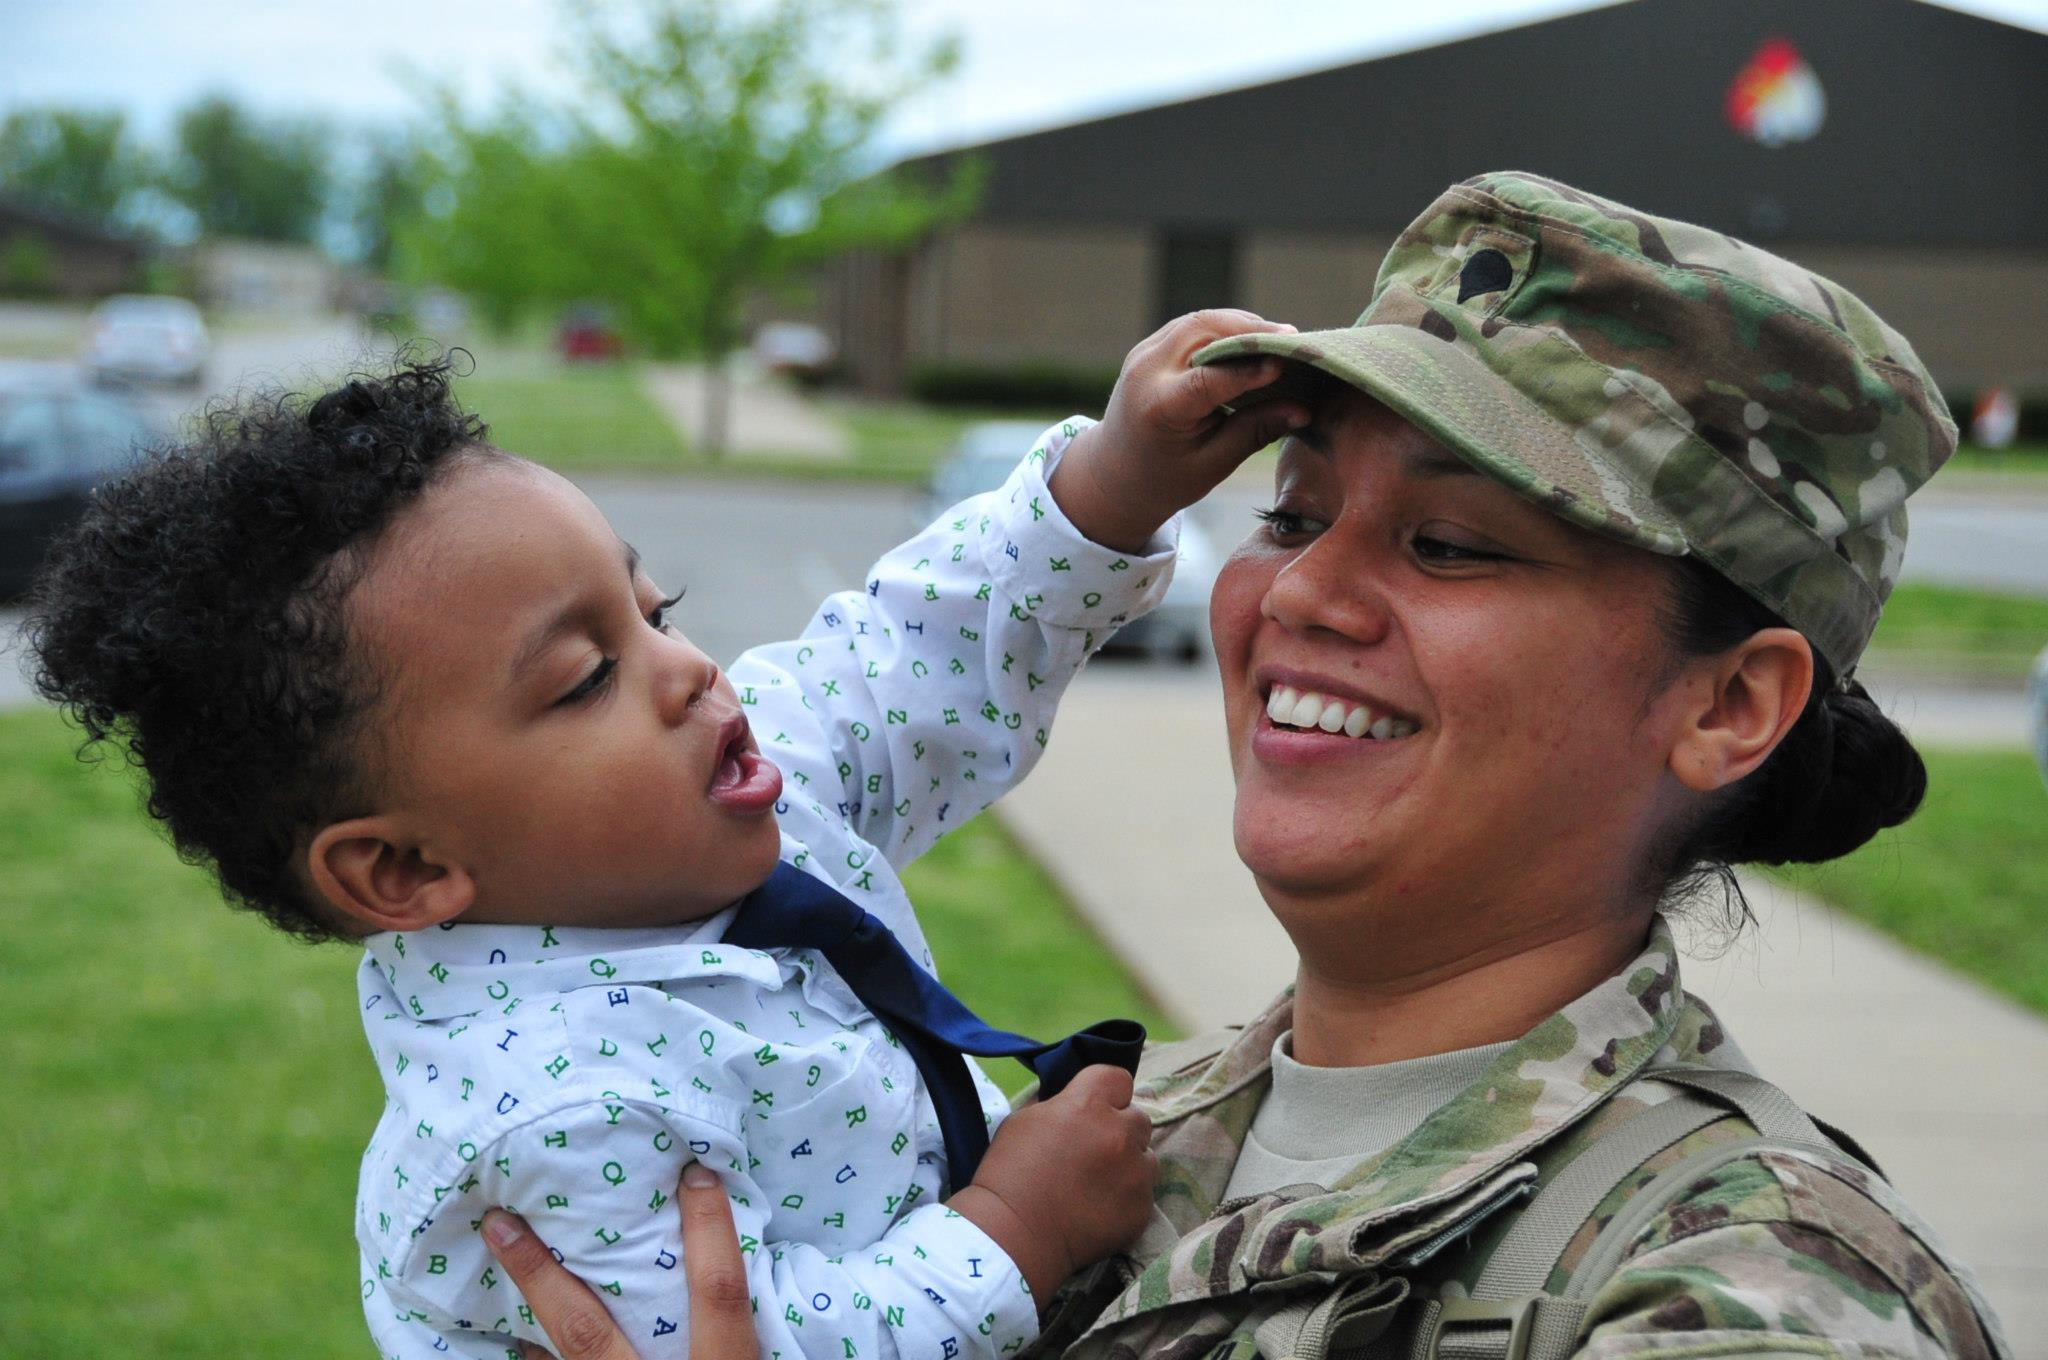 Spc. Yring Richardson, a human resource specialist with 4th Brigade Special Troops Battalion, 4th Brigade Combat Team, 101 ABN DIV, 101st Airborne Division (Air Assault), shares a cheerful moment with her son during family time, April 28, 2013, prior to deploying from U.S. Army Fort Campbell, Ky. Richardson is deployed to Afghanistan in support of Operation Enduring Freedom. (U.S. Army photo by Kimberly K. Menzies, 4th BCT Public Affairs)